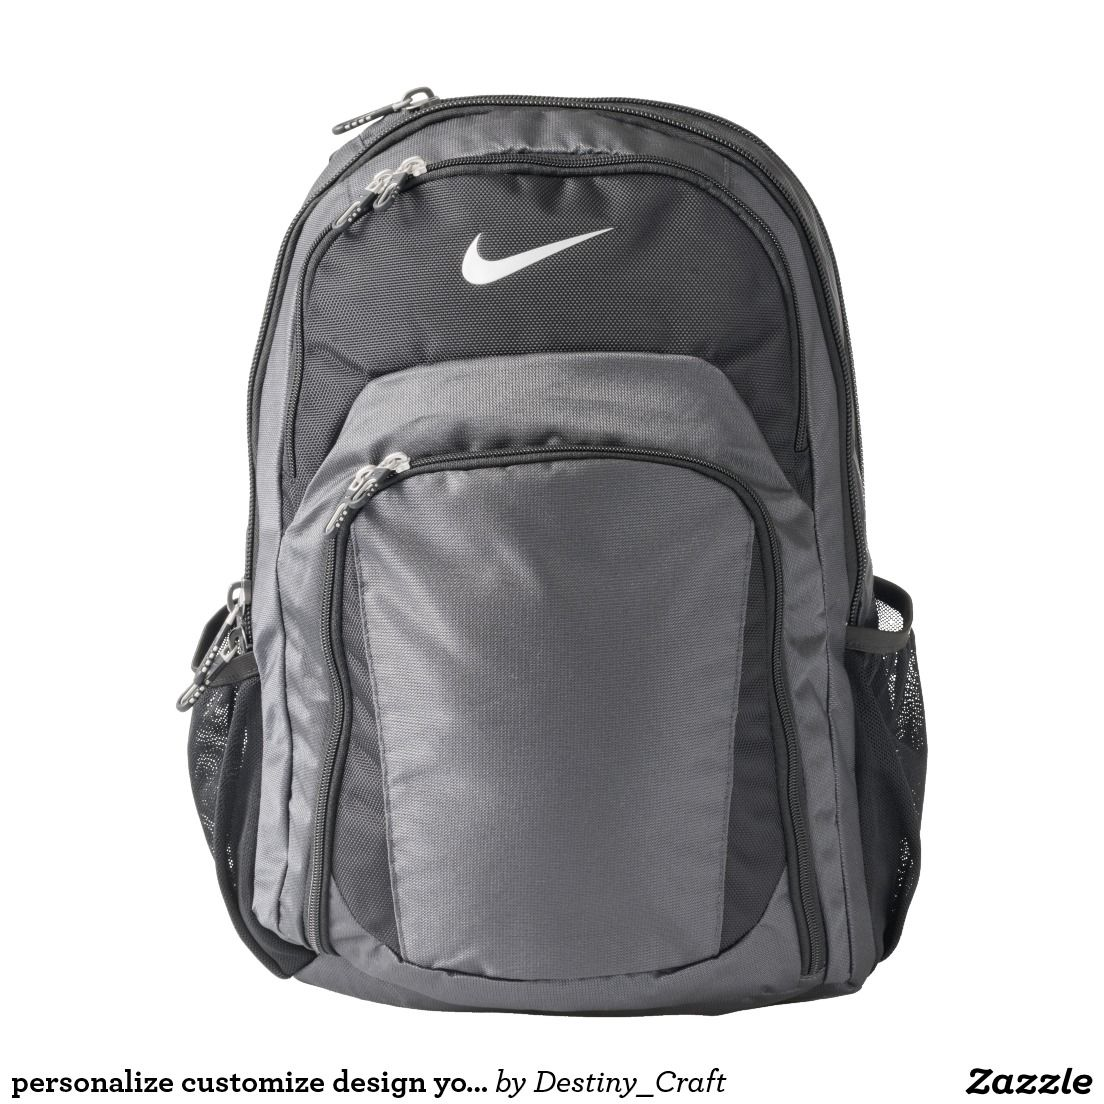 personalize customize design your own gift nike backpack  ada1a78a94e47